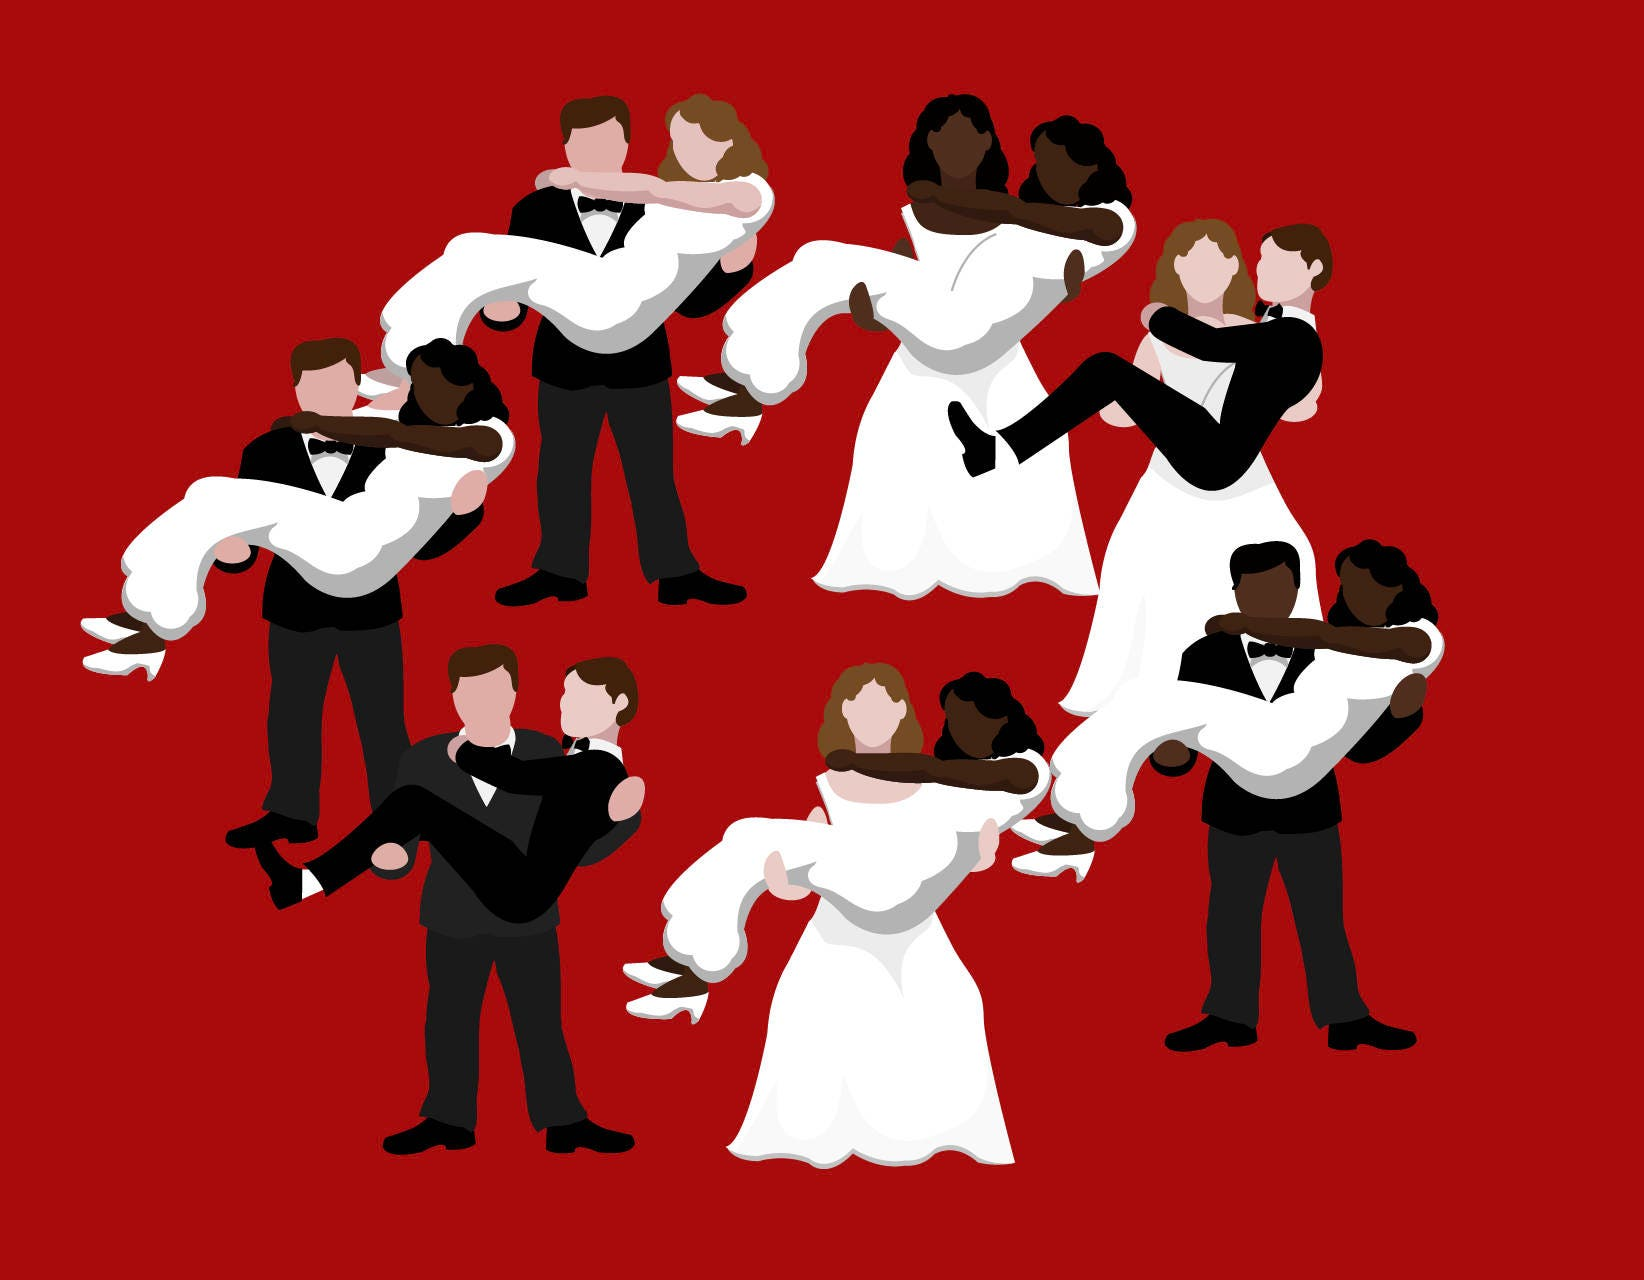 MARRIAGE CLIPART - Wedding clipart - marriage clip art, wedding ...